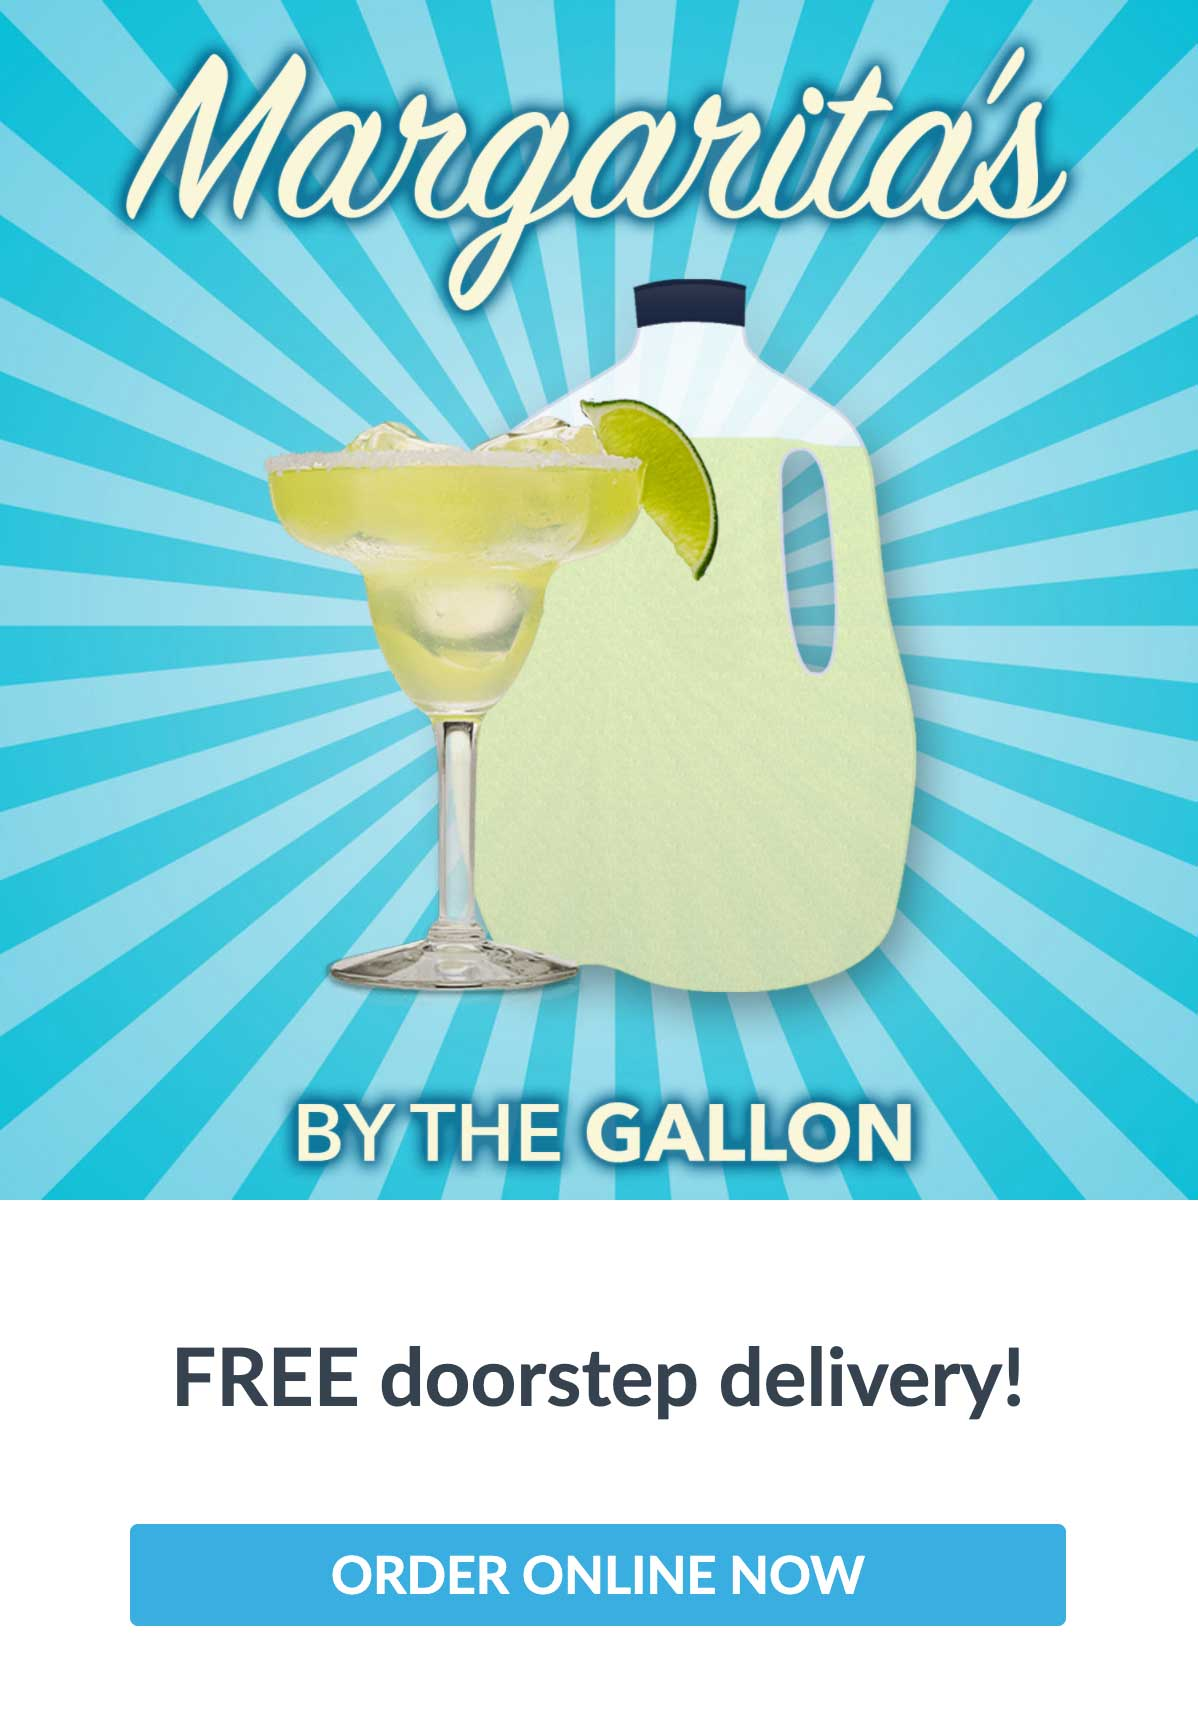 EVO Margaritas by the gallon email